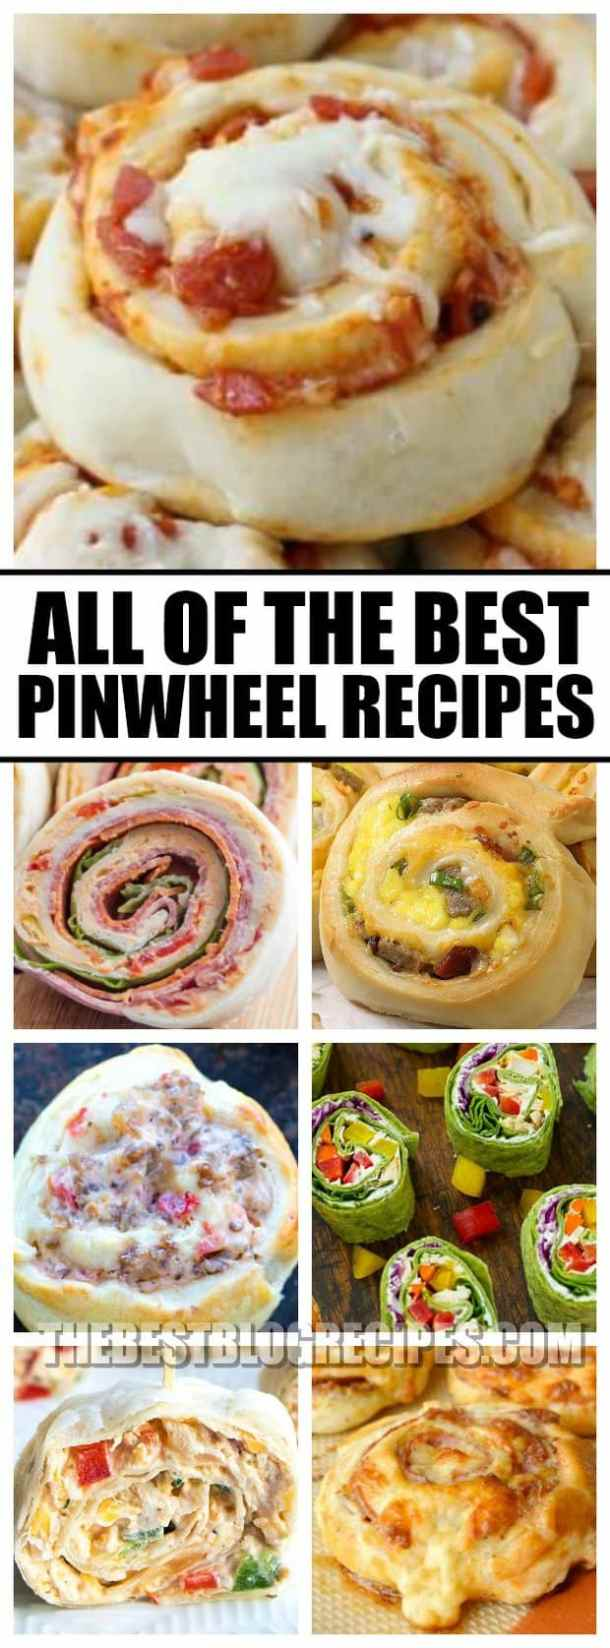 The Best Pinwheel Recipes